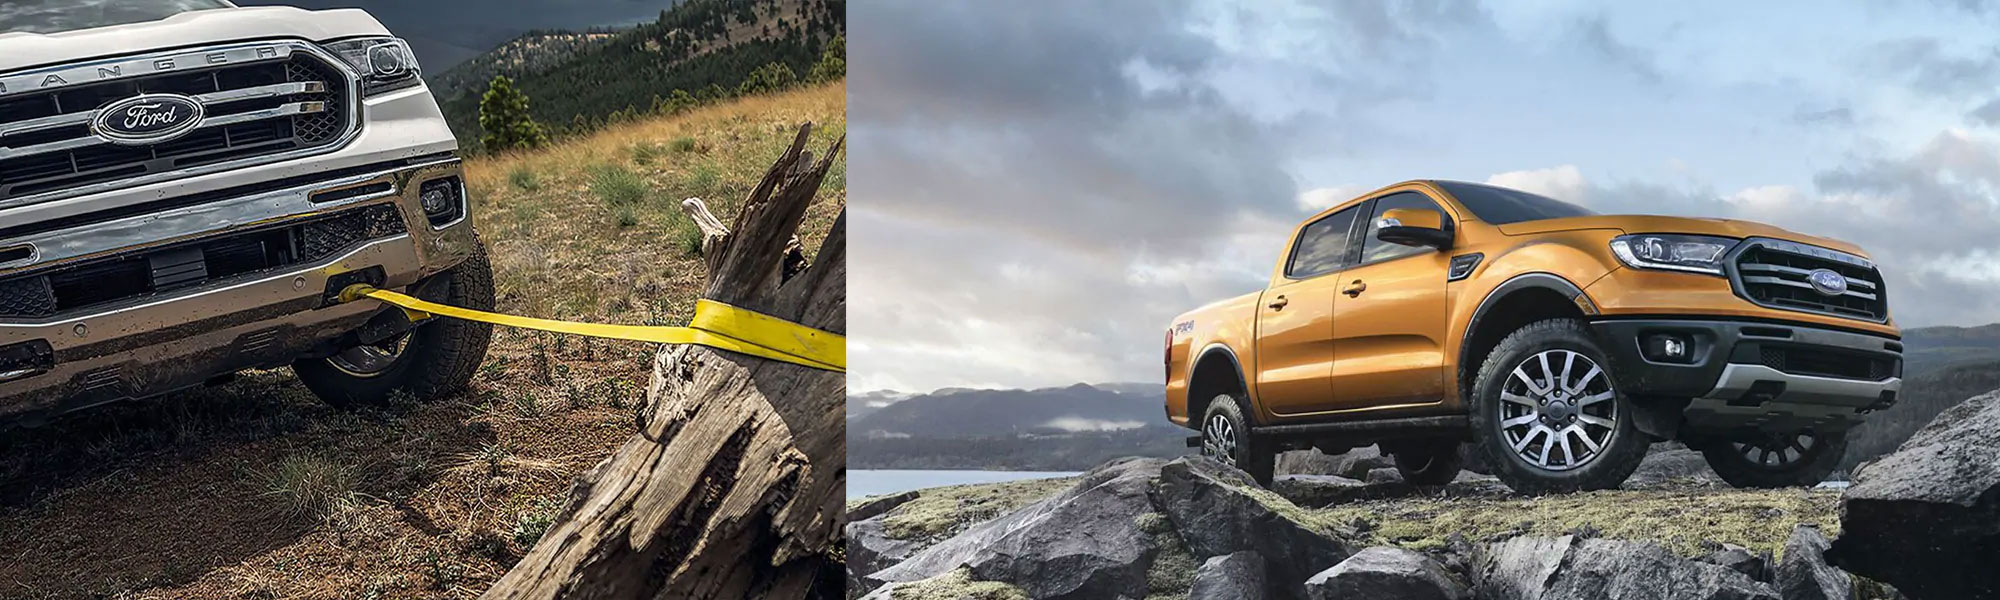 2019 Ford Ranger Outdoors